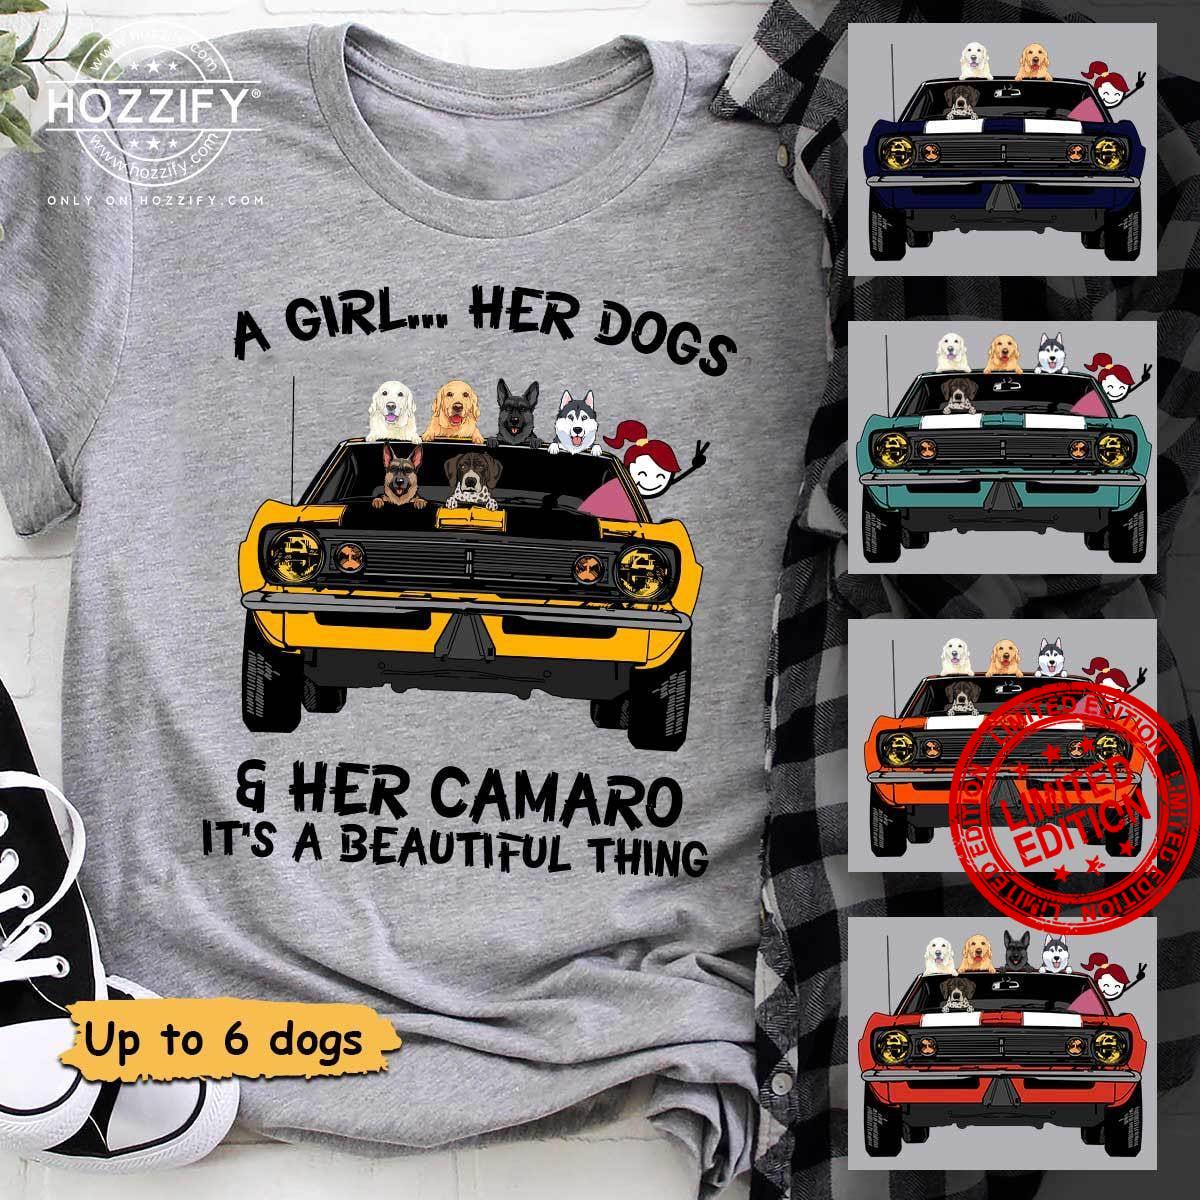 A GIrl Her Dogs Her Camaro It's A Beautiful Thing Shirt